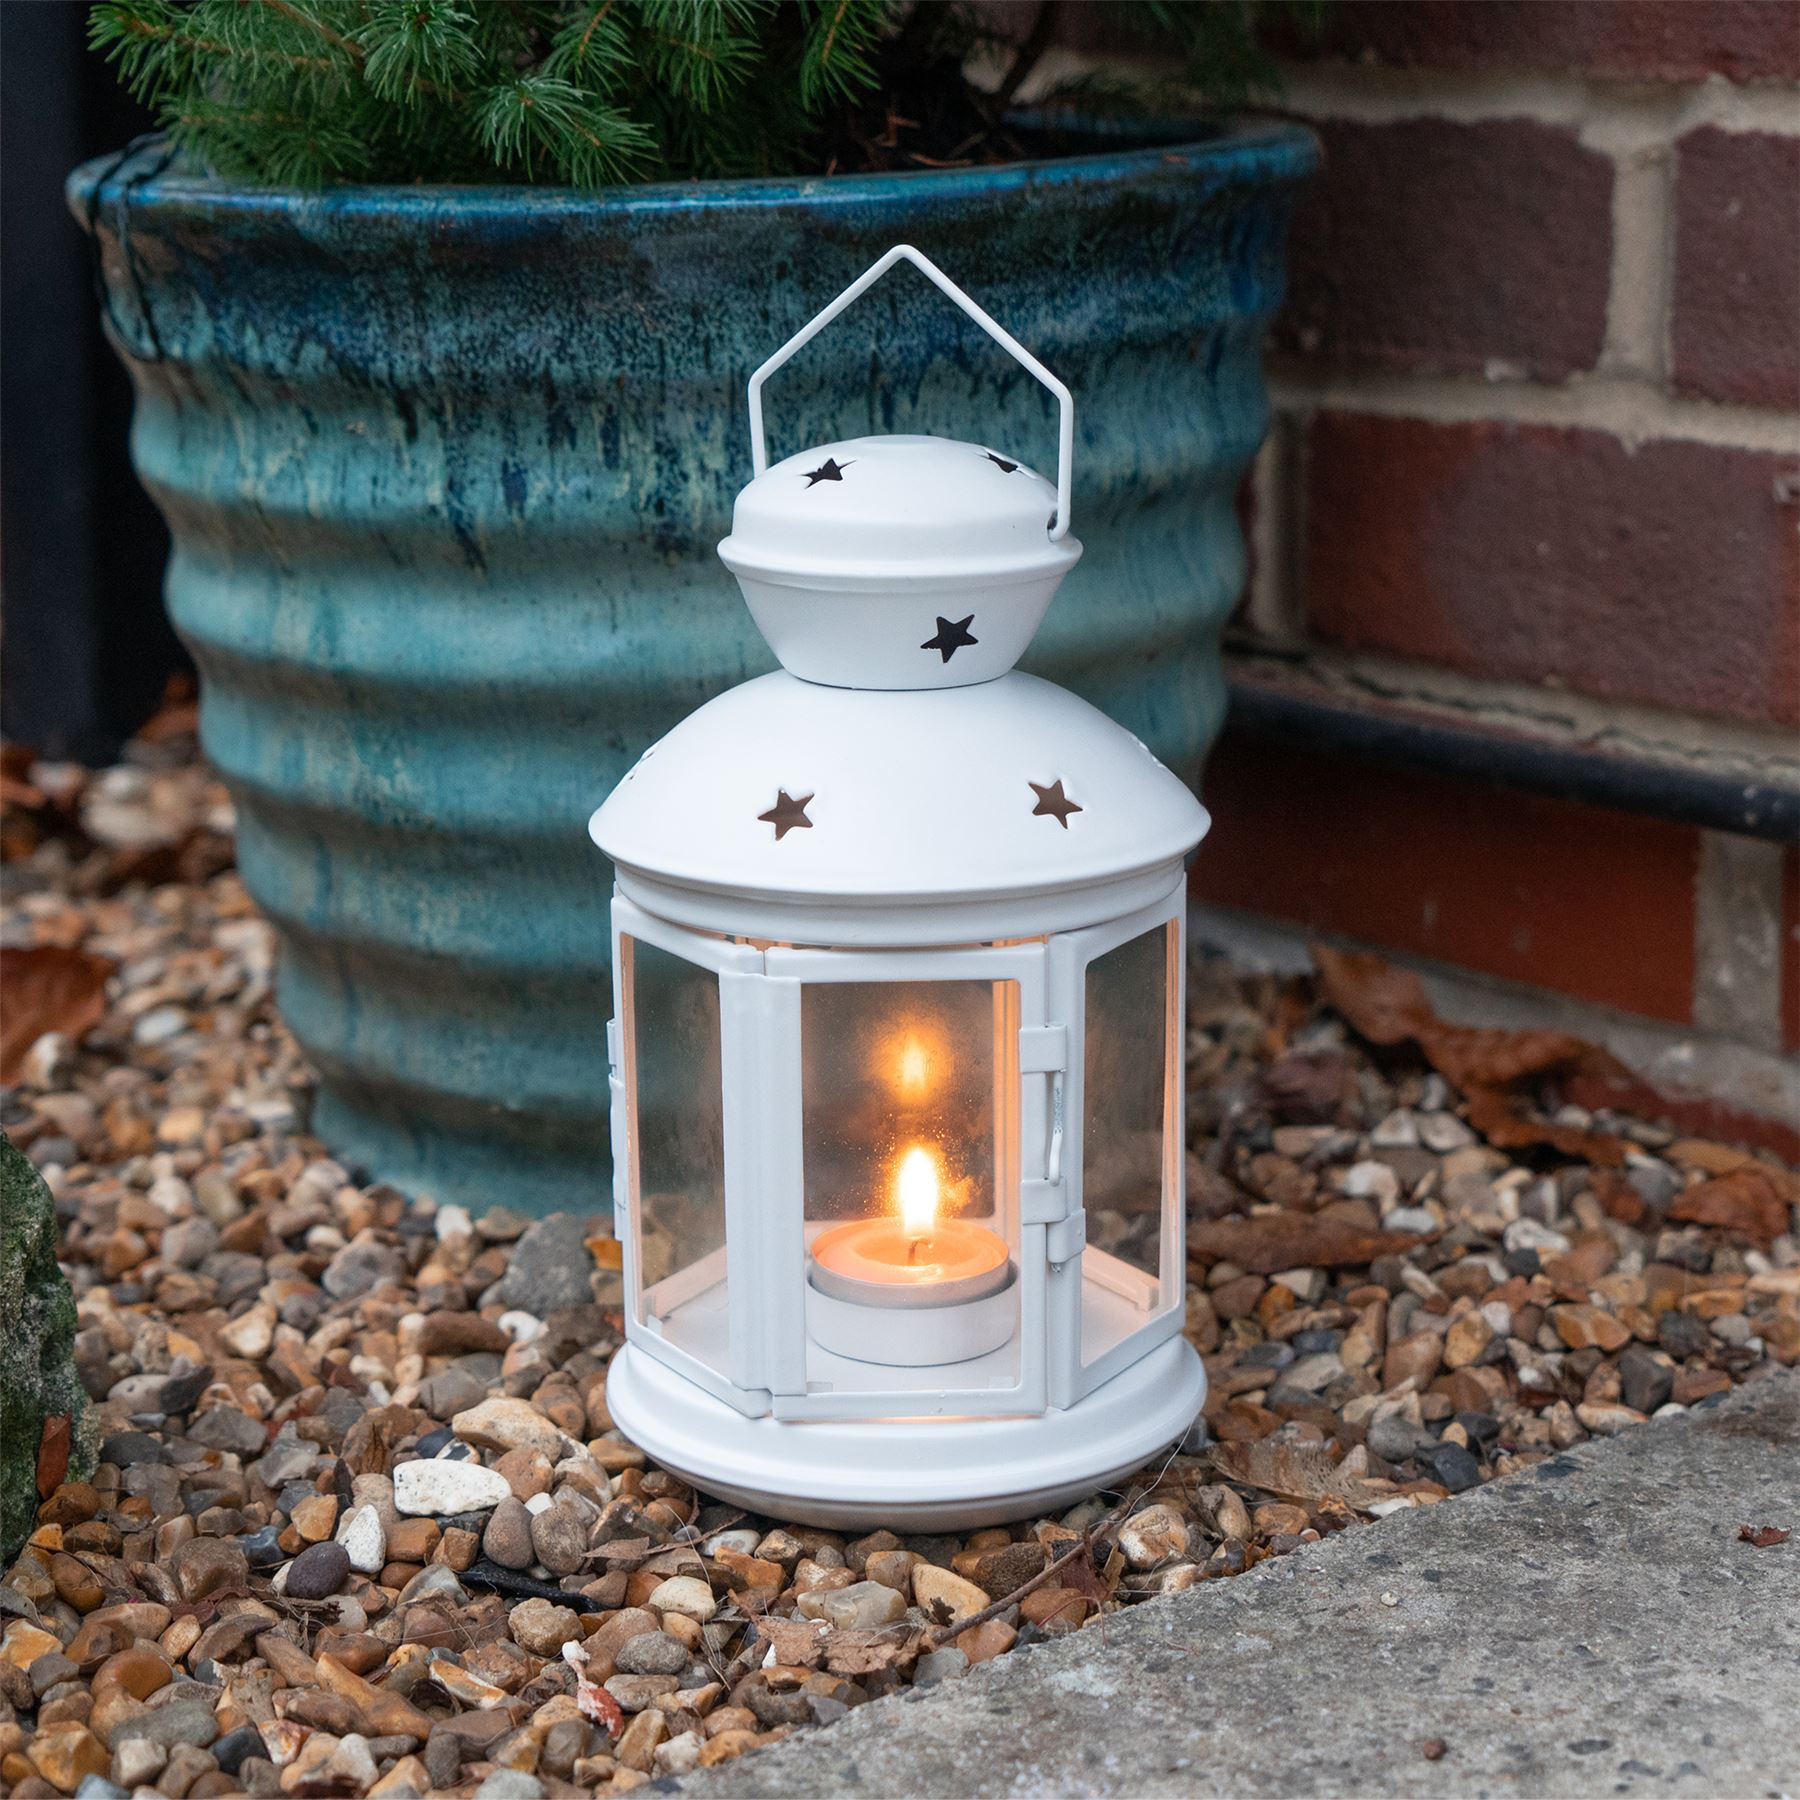 Metal-Candle-Lanterns-Tealight-Holders-Vintage-French-Moroccan-Style-20cm-x2 thumbnail 25